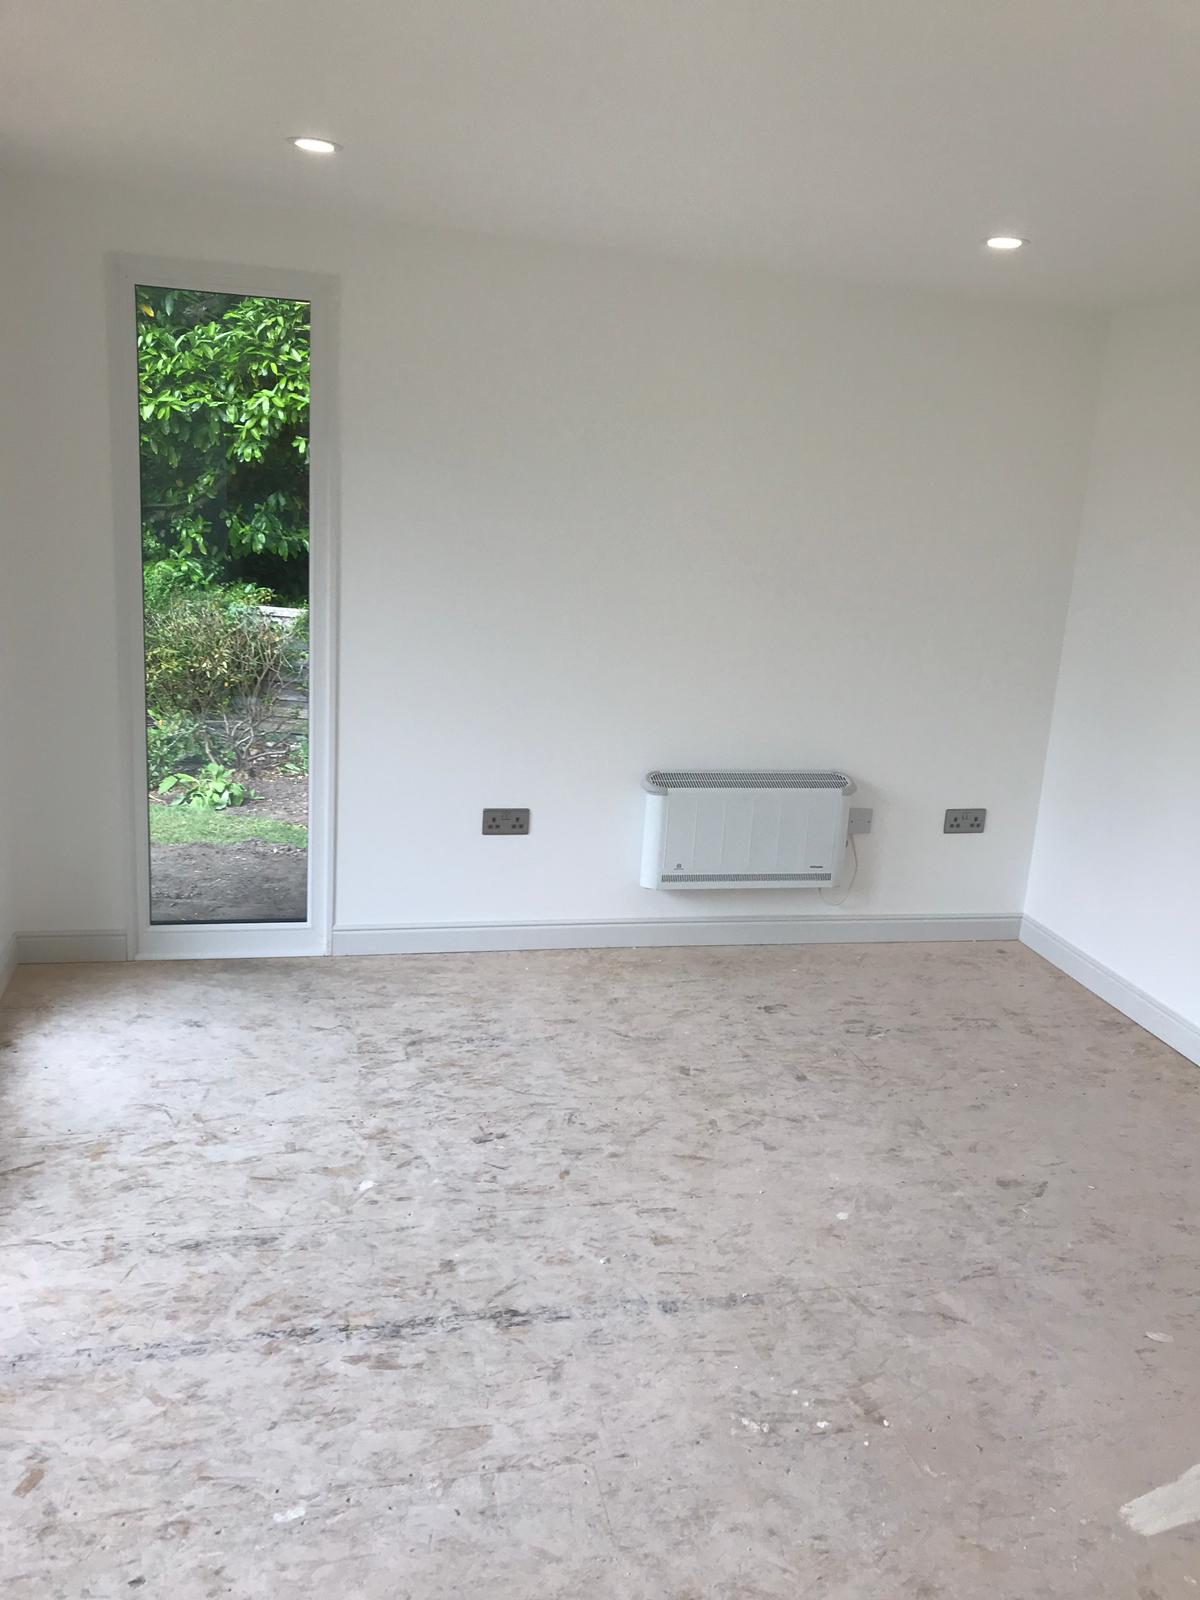 Plastered and painted interior upgrade with inset downlights, slimline heater and full height fixed window.